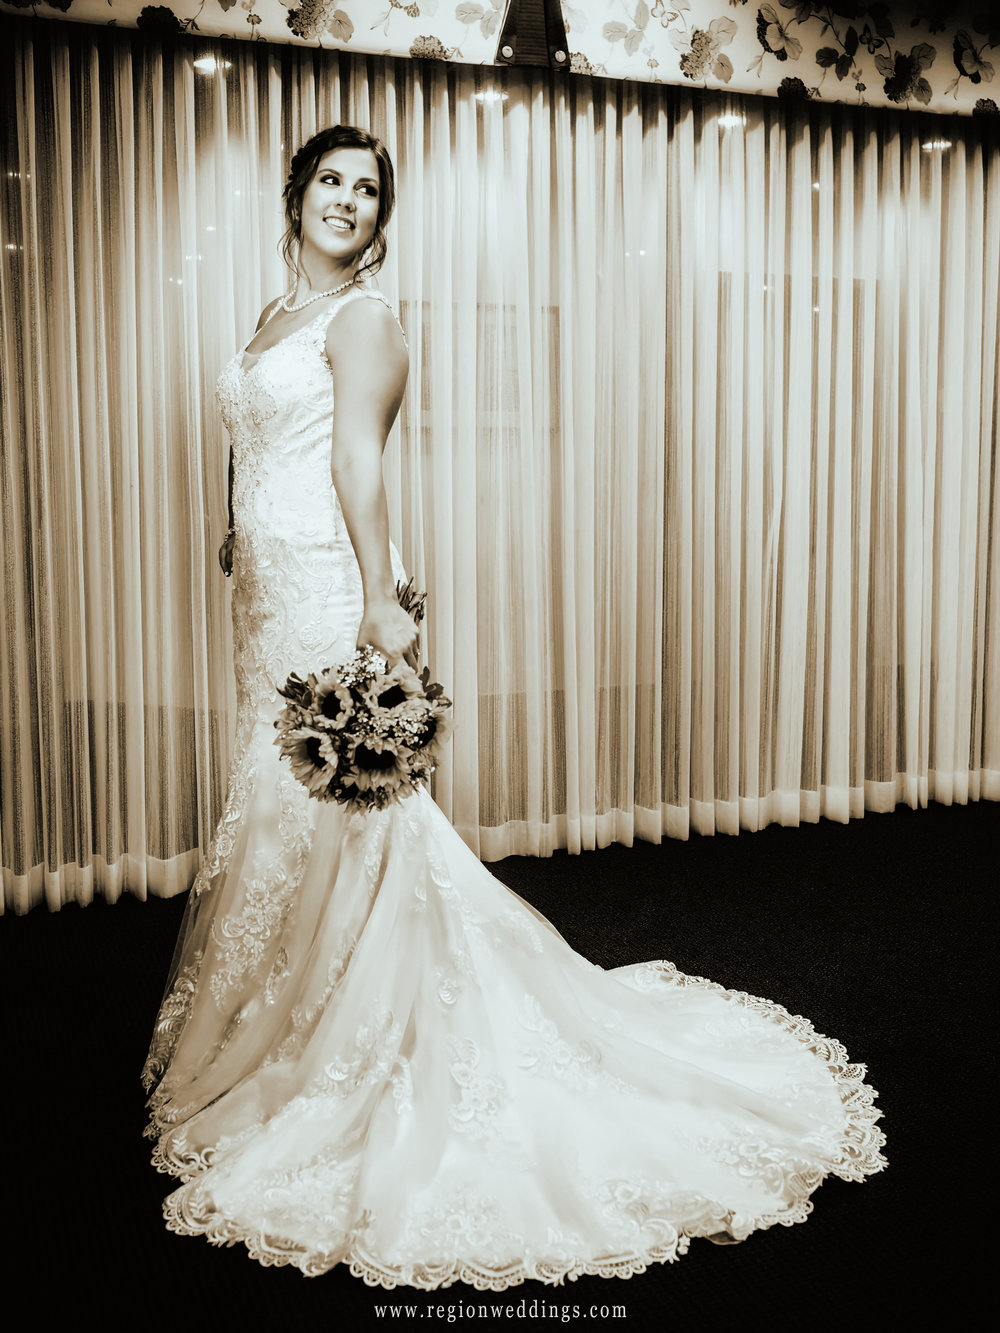 A vintage look for the bride inside the suite at Briar Ridge Country Club.